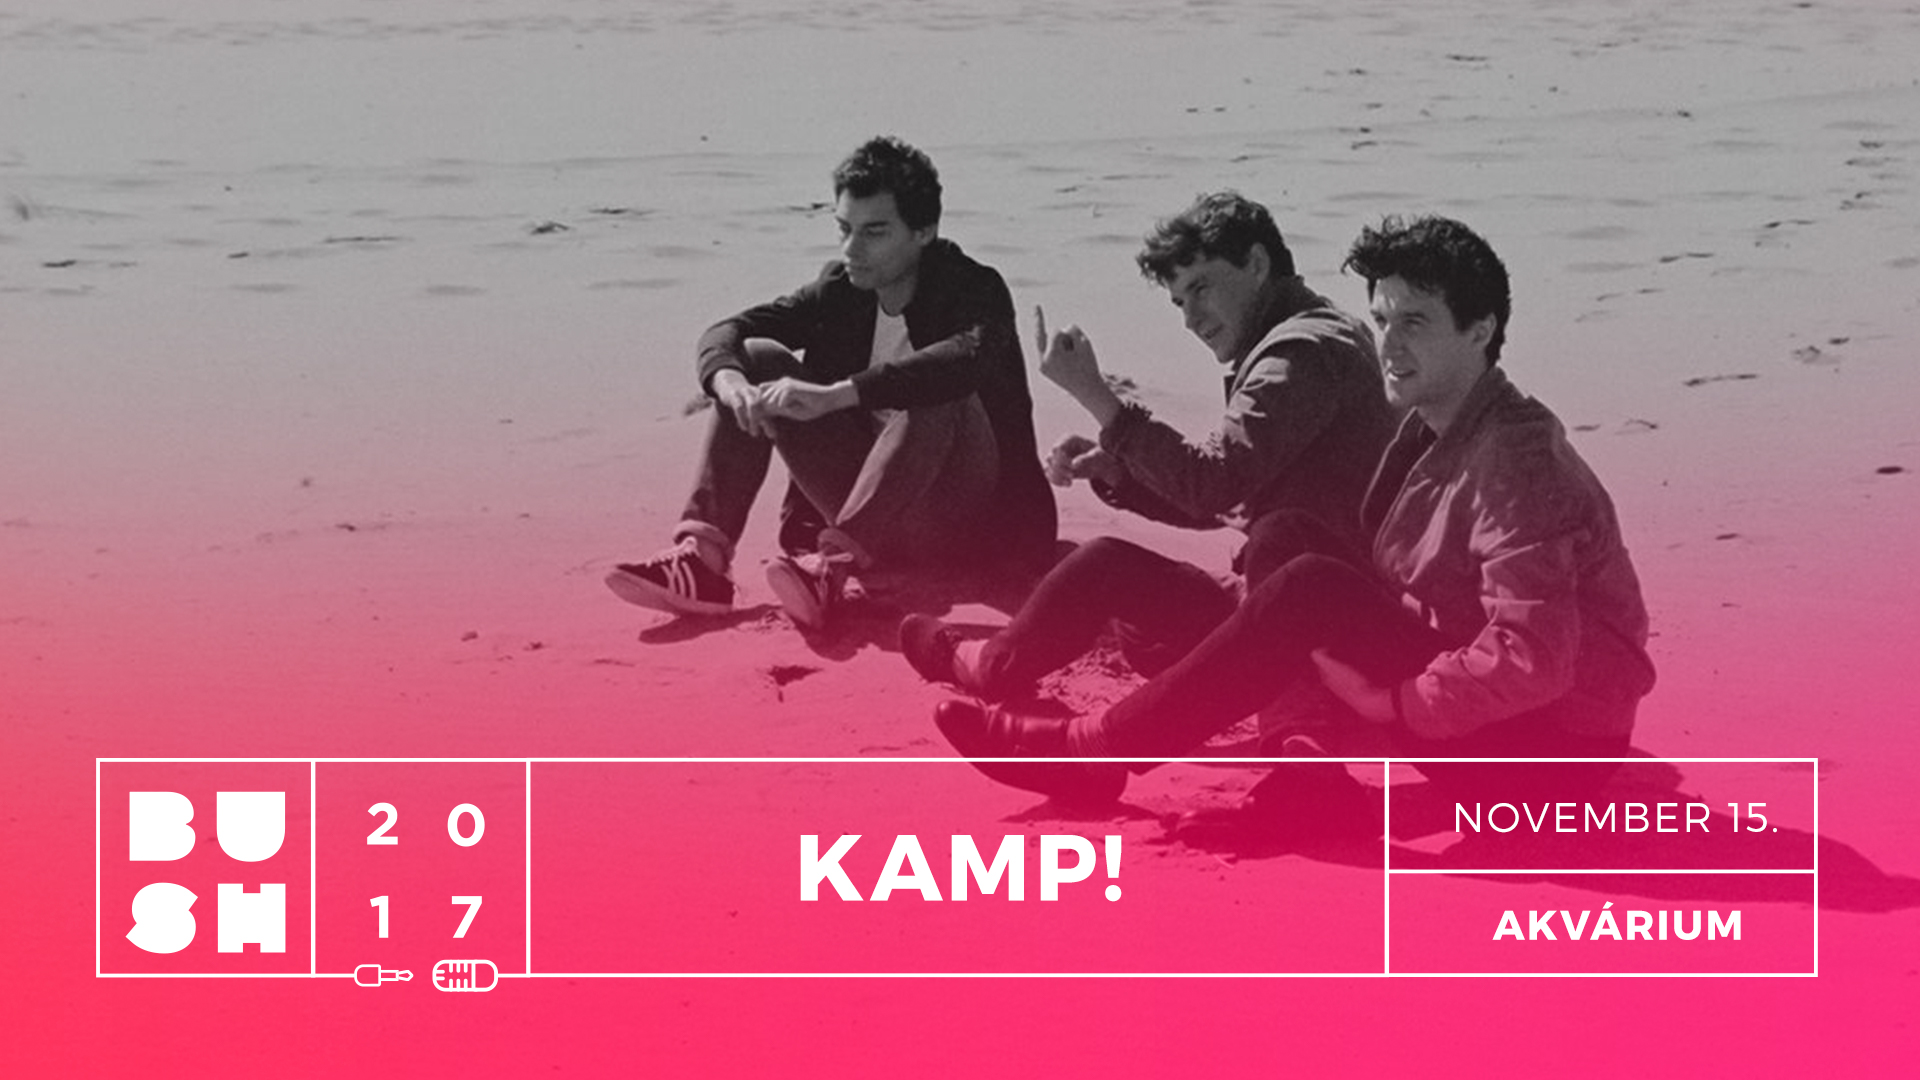 BuSH festival takeover: discover the disco-tinged synth sound of Polish pop trio, Kamp!